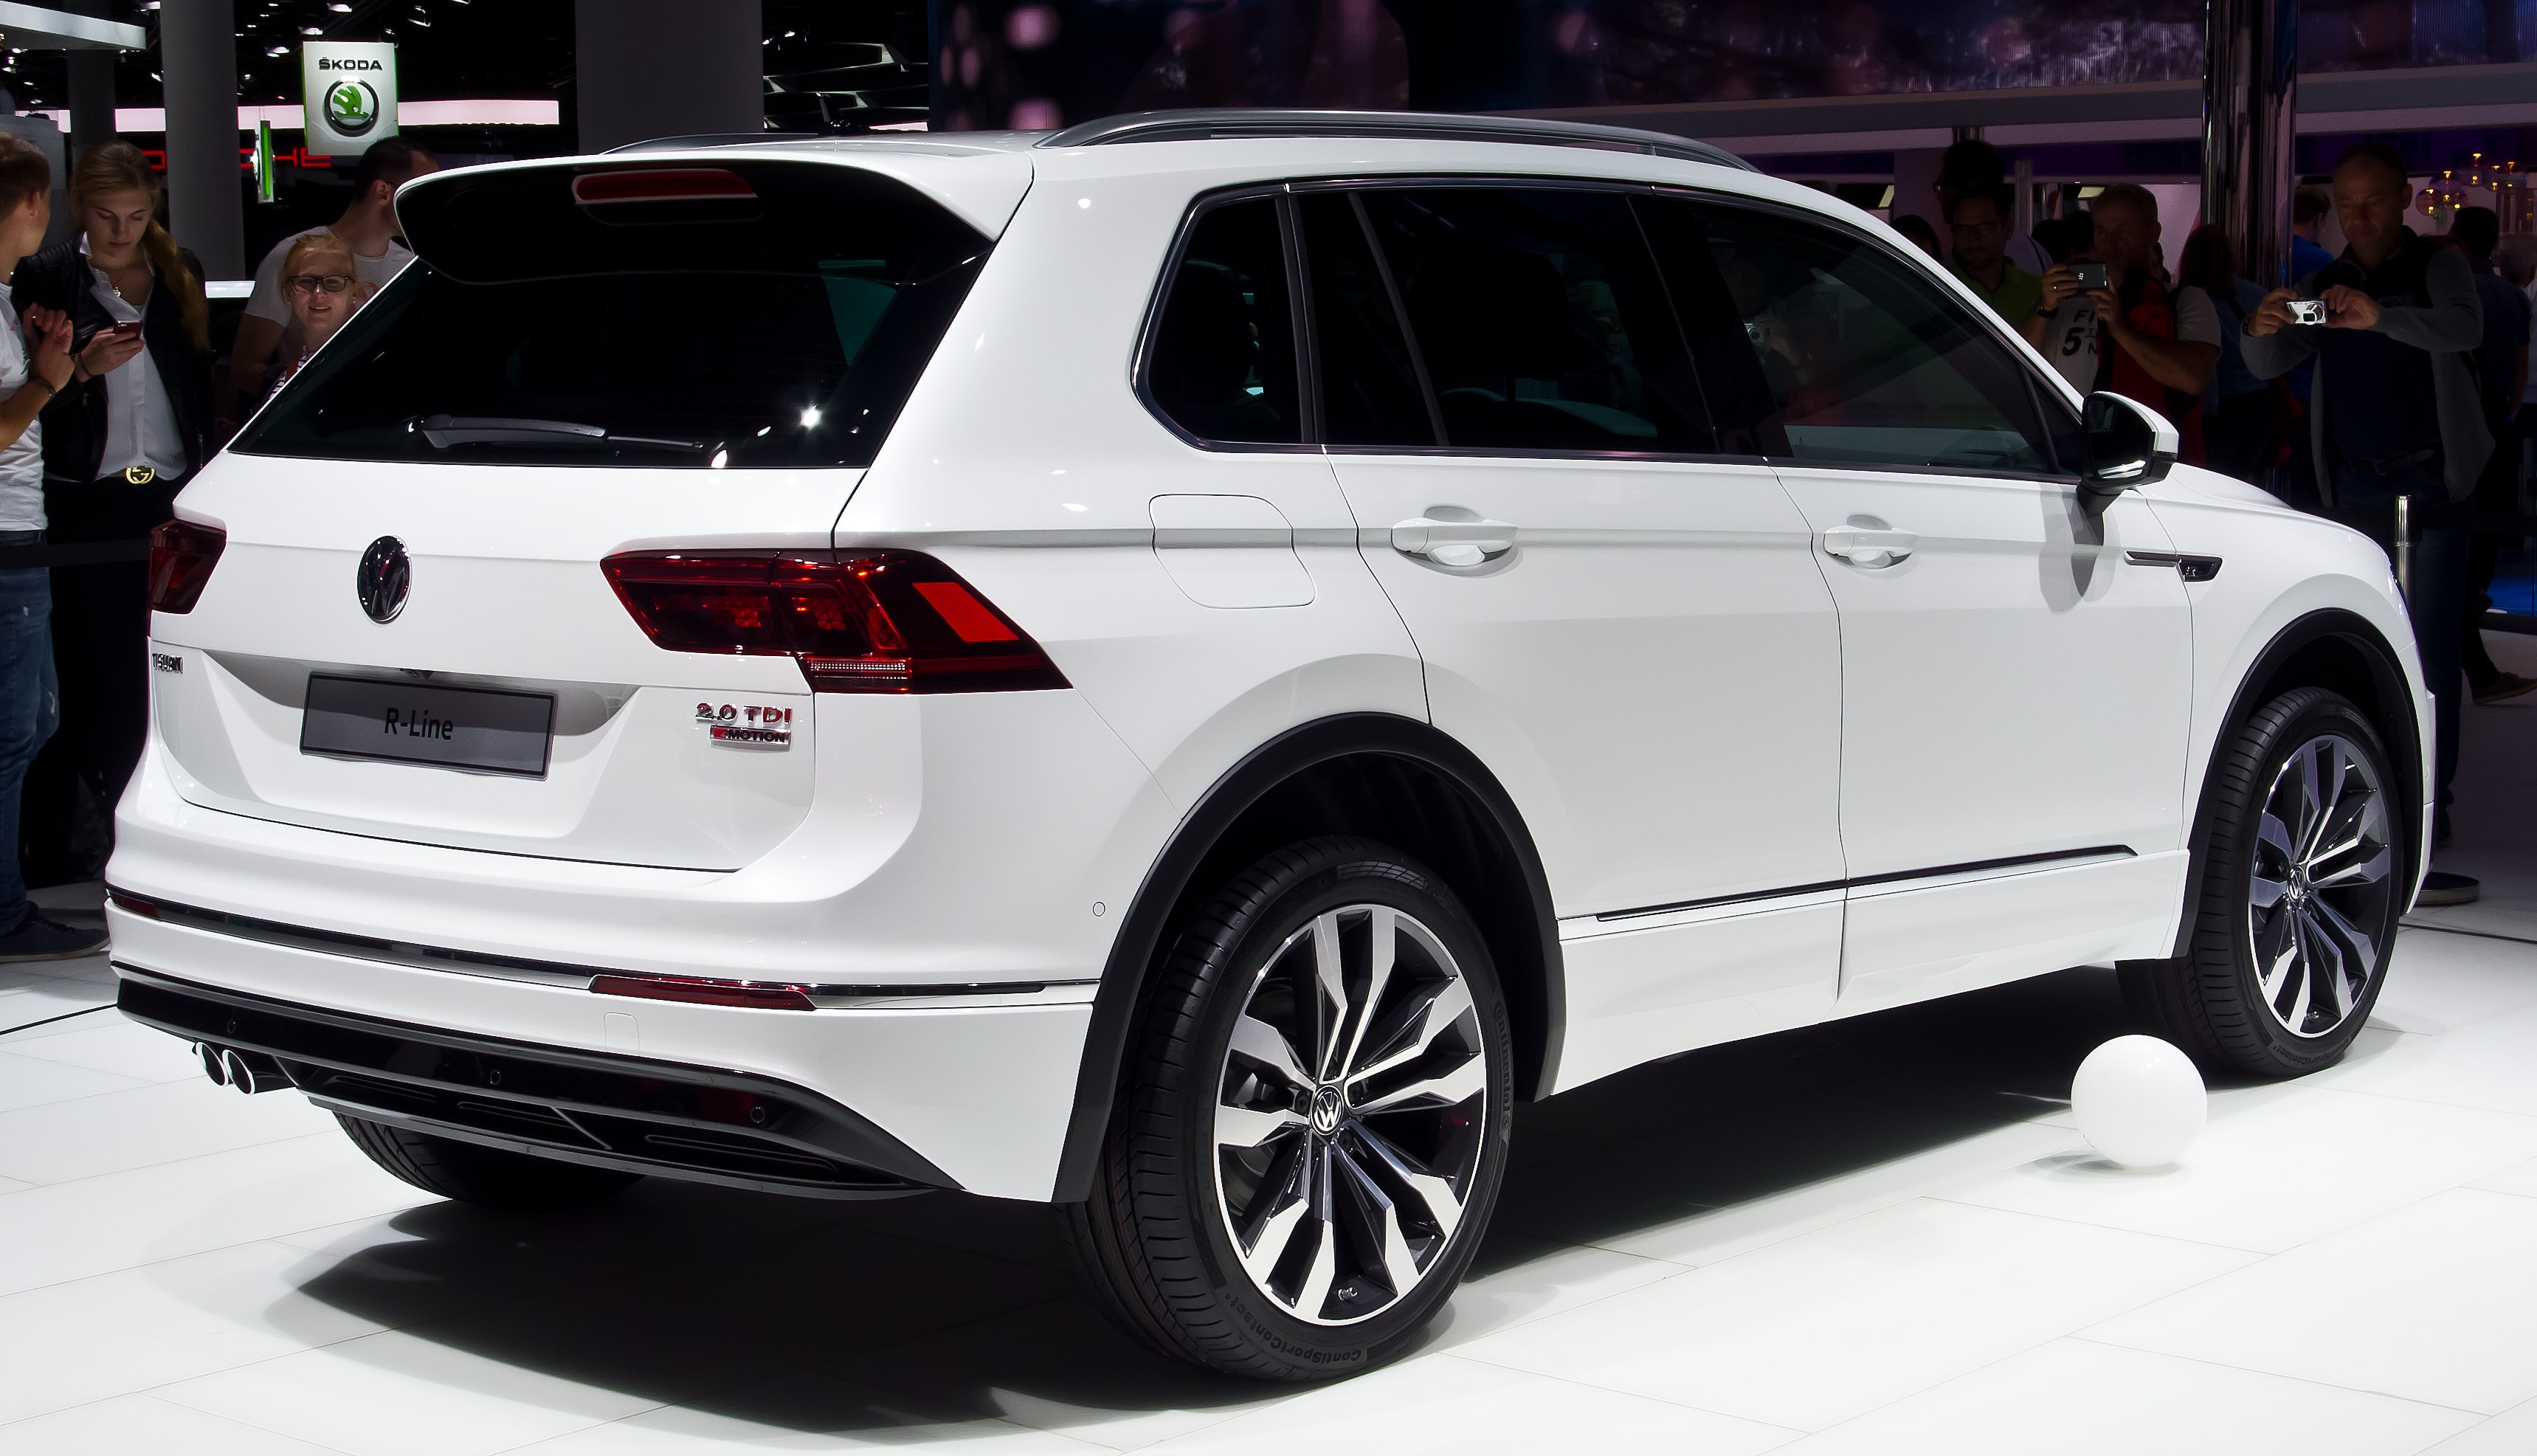 Volkswagen Tiguan 2 Wallpapers hd